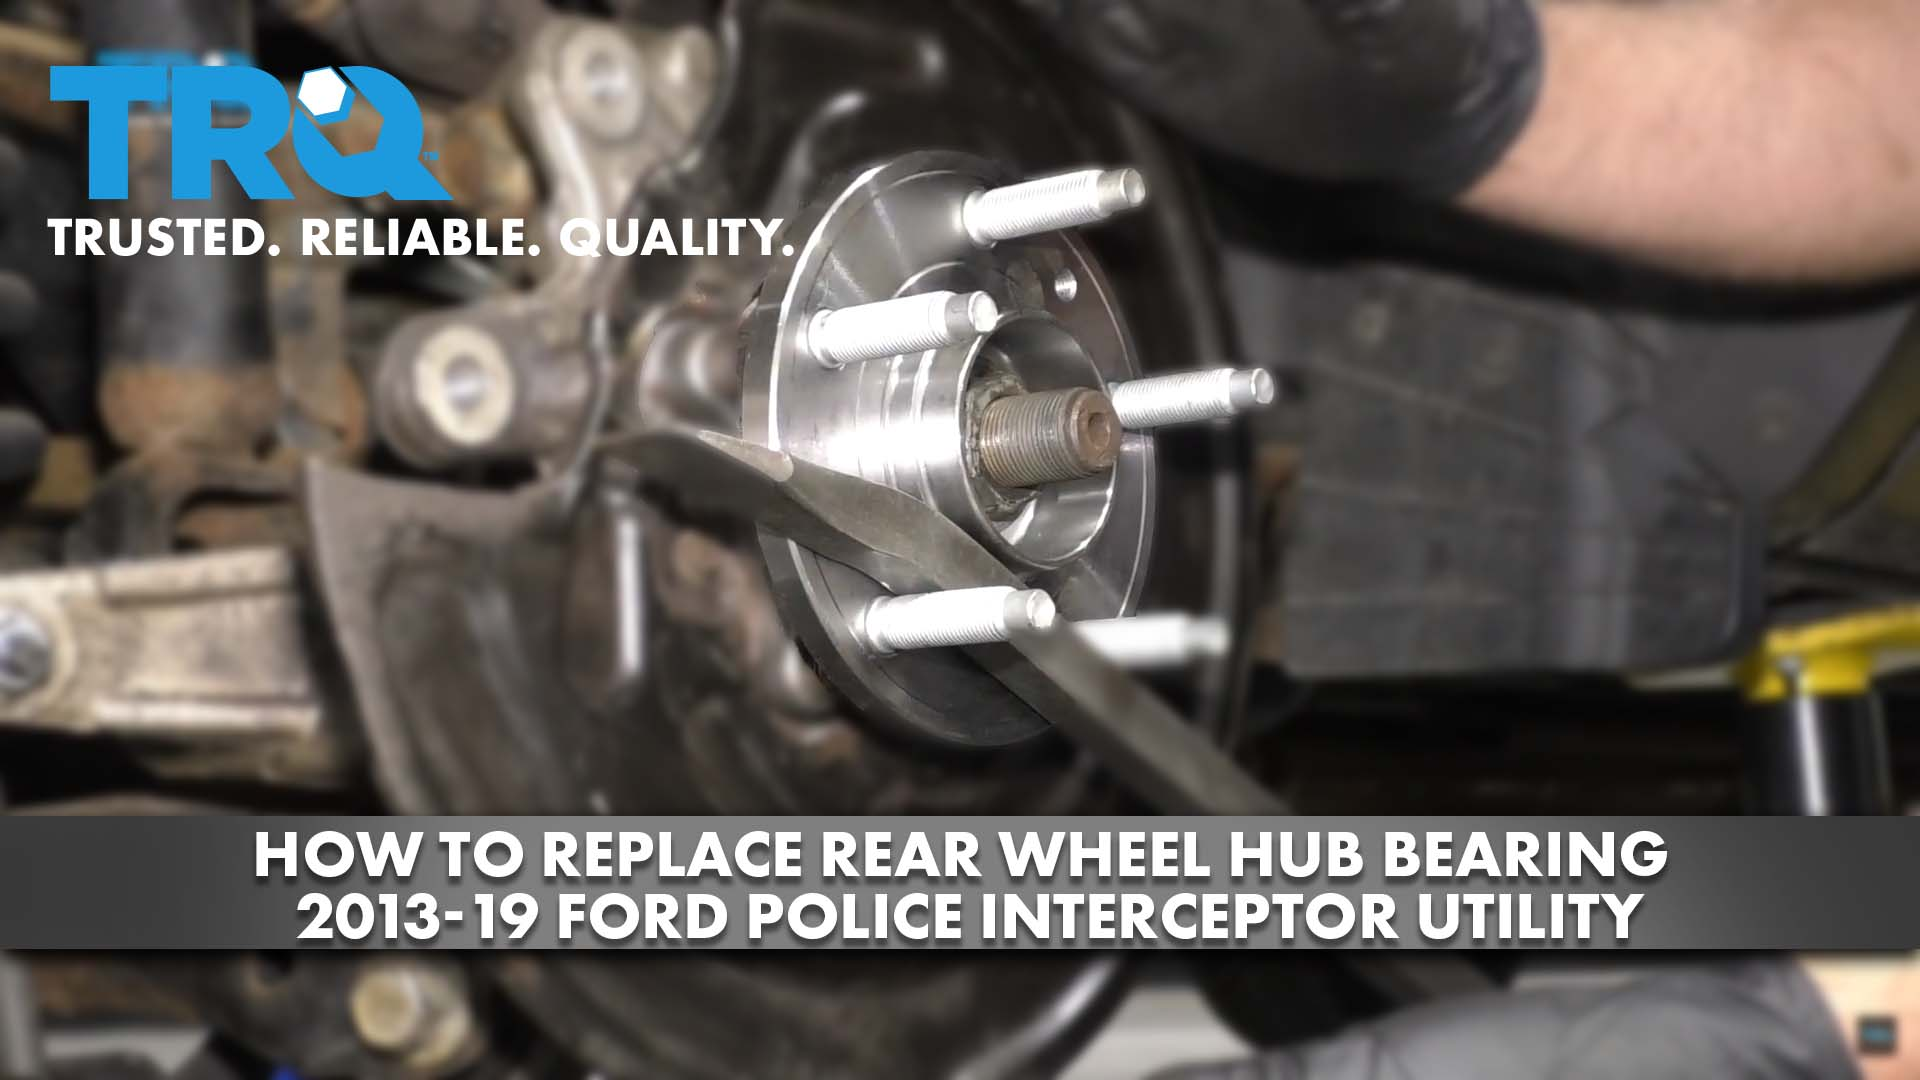 How to Replace Rear Wheel Hub Bearing 2013-19 Ford Police Interceptor Utility